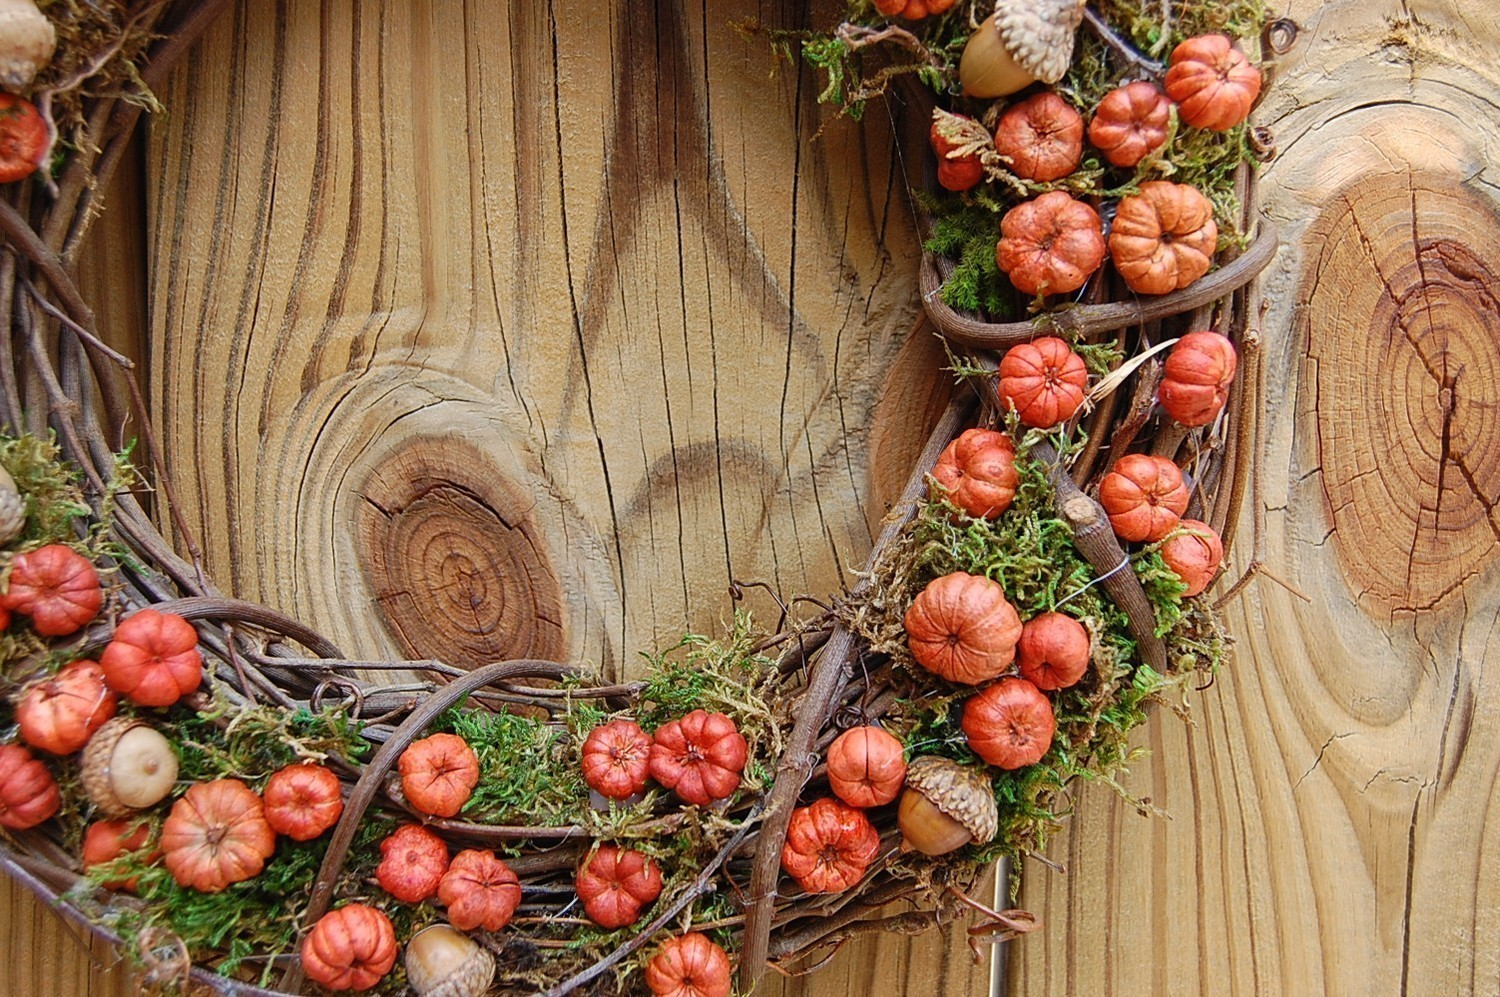 Rustic dried floral pumpkin wreath